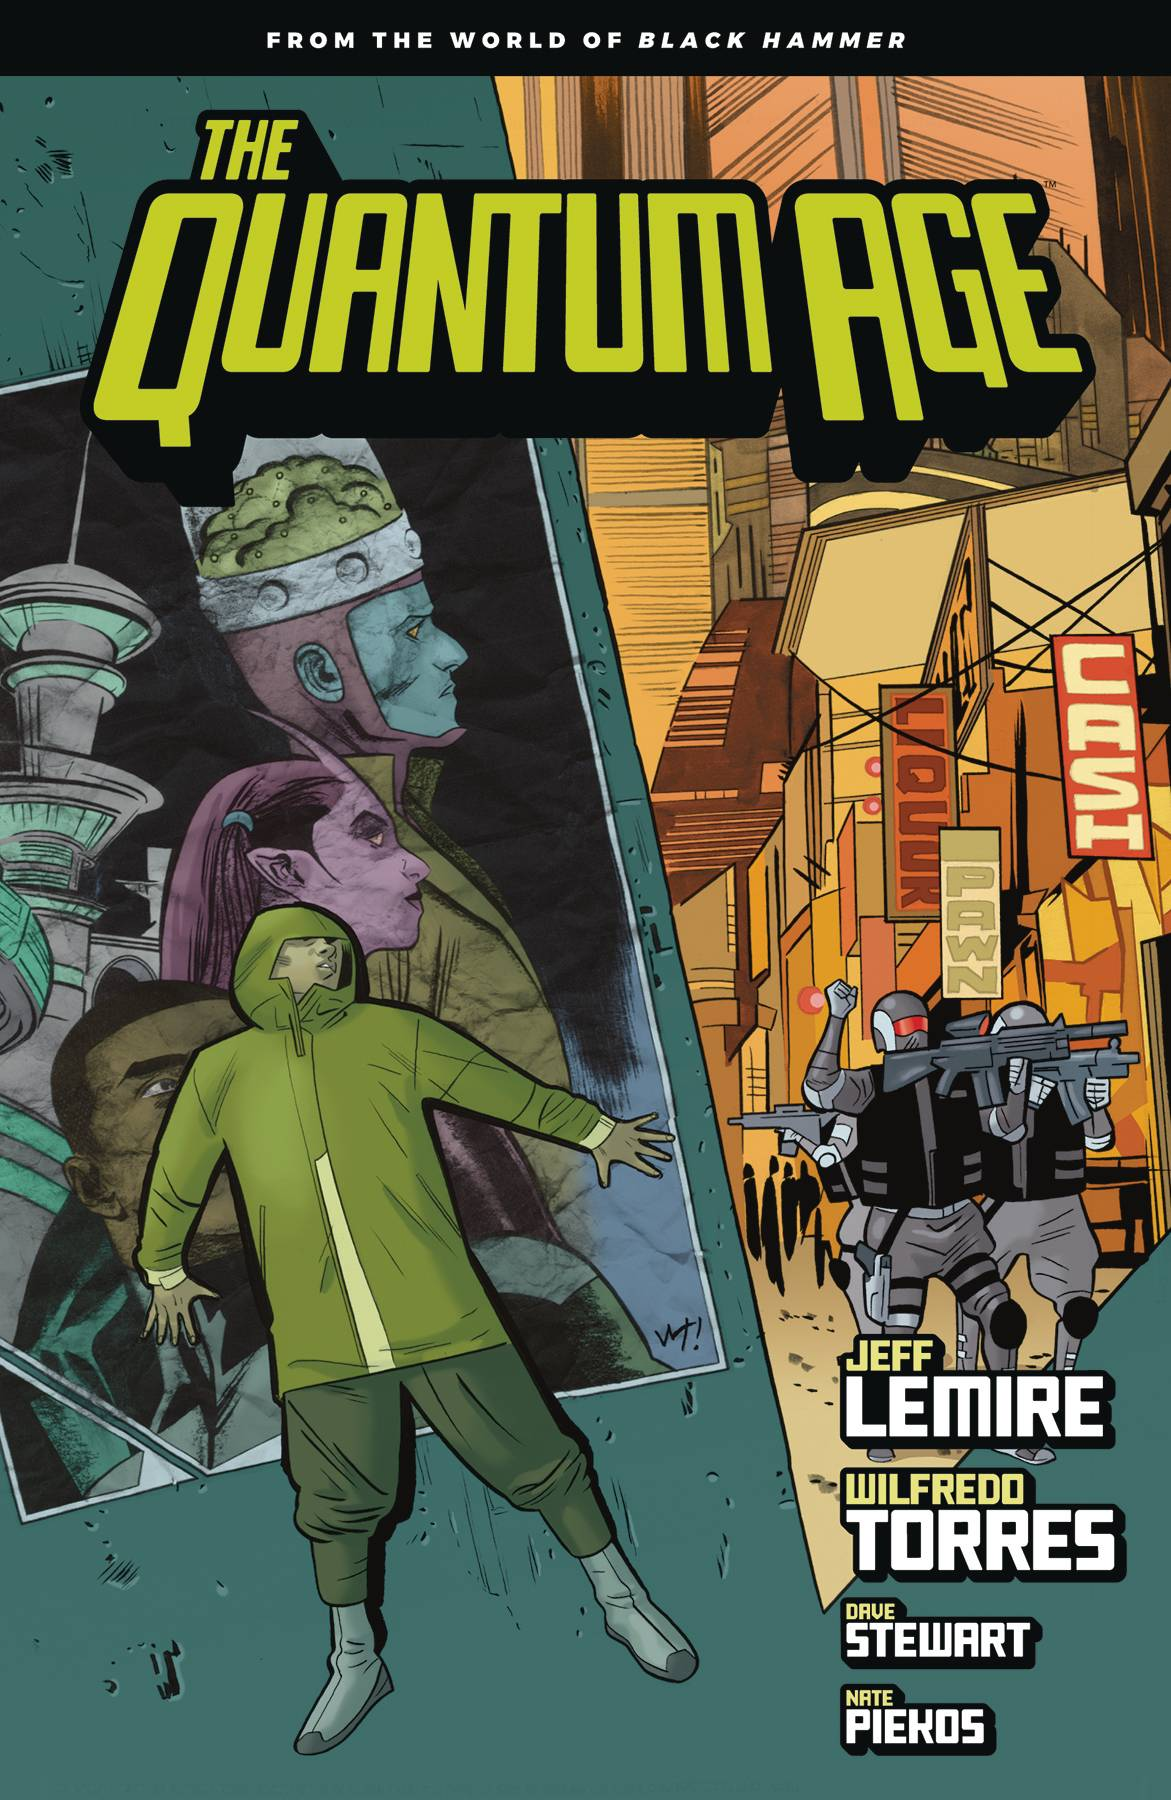 QUANTUM AGE TP FROM WORLD OF BLACK HAMMER VOL 01 (JAN190414)